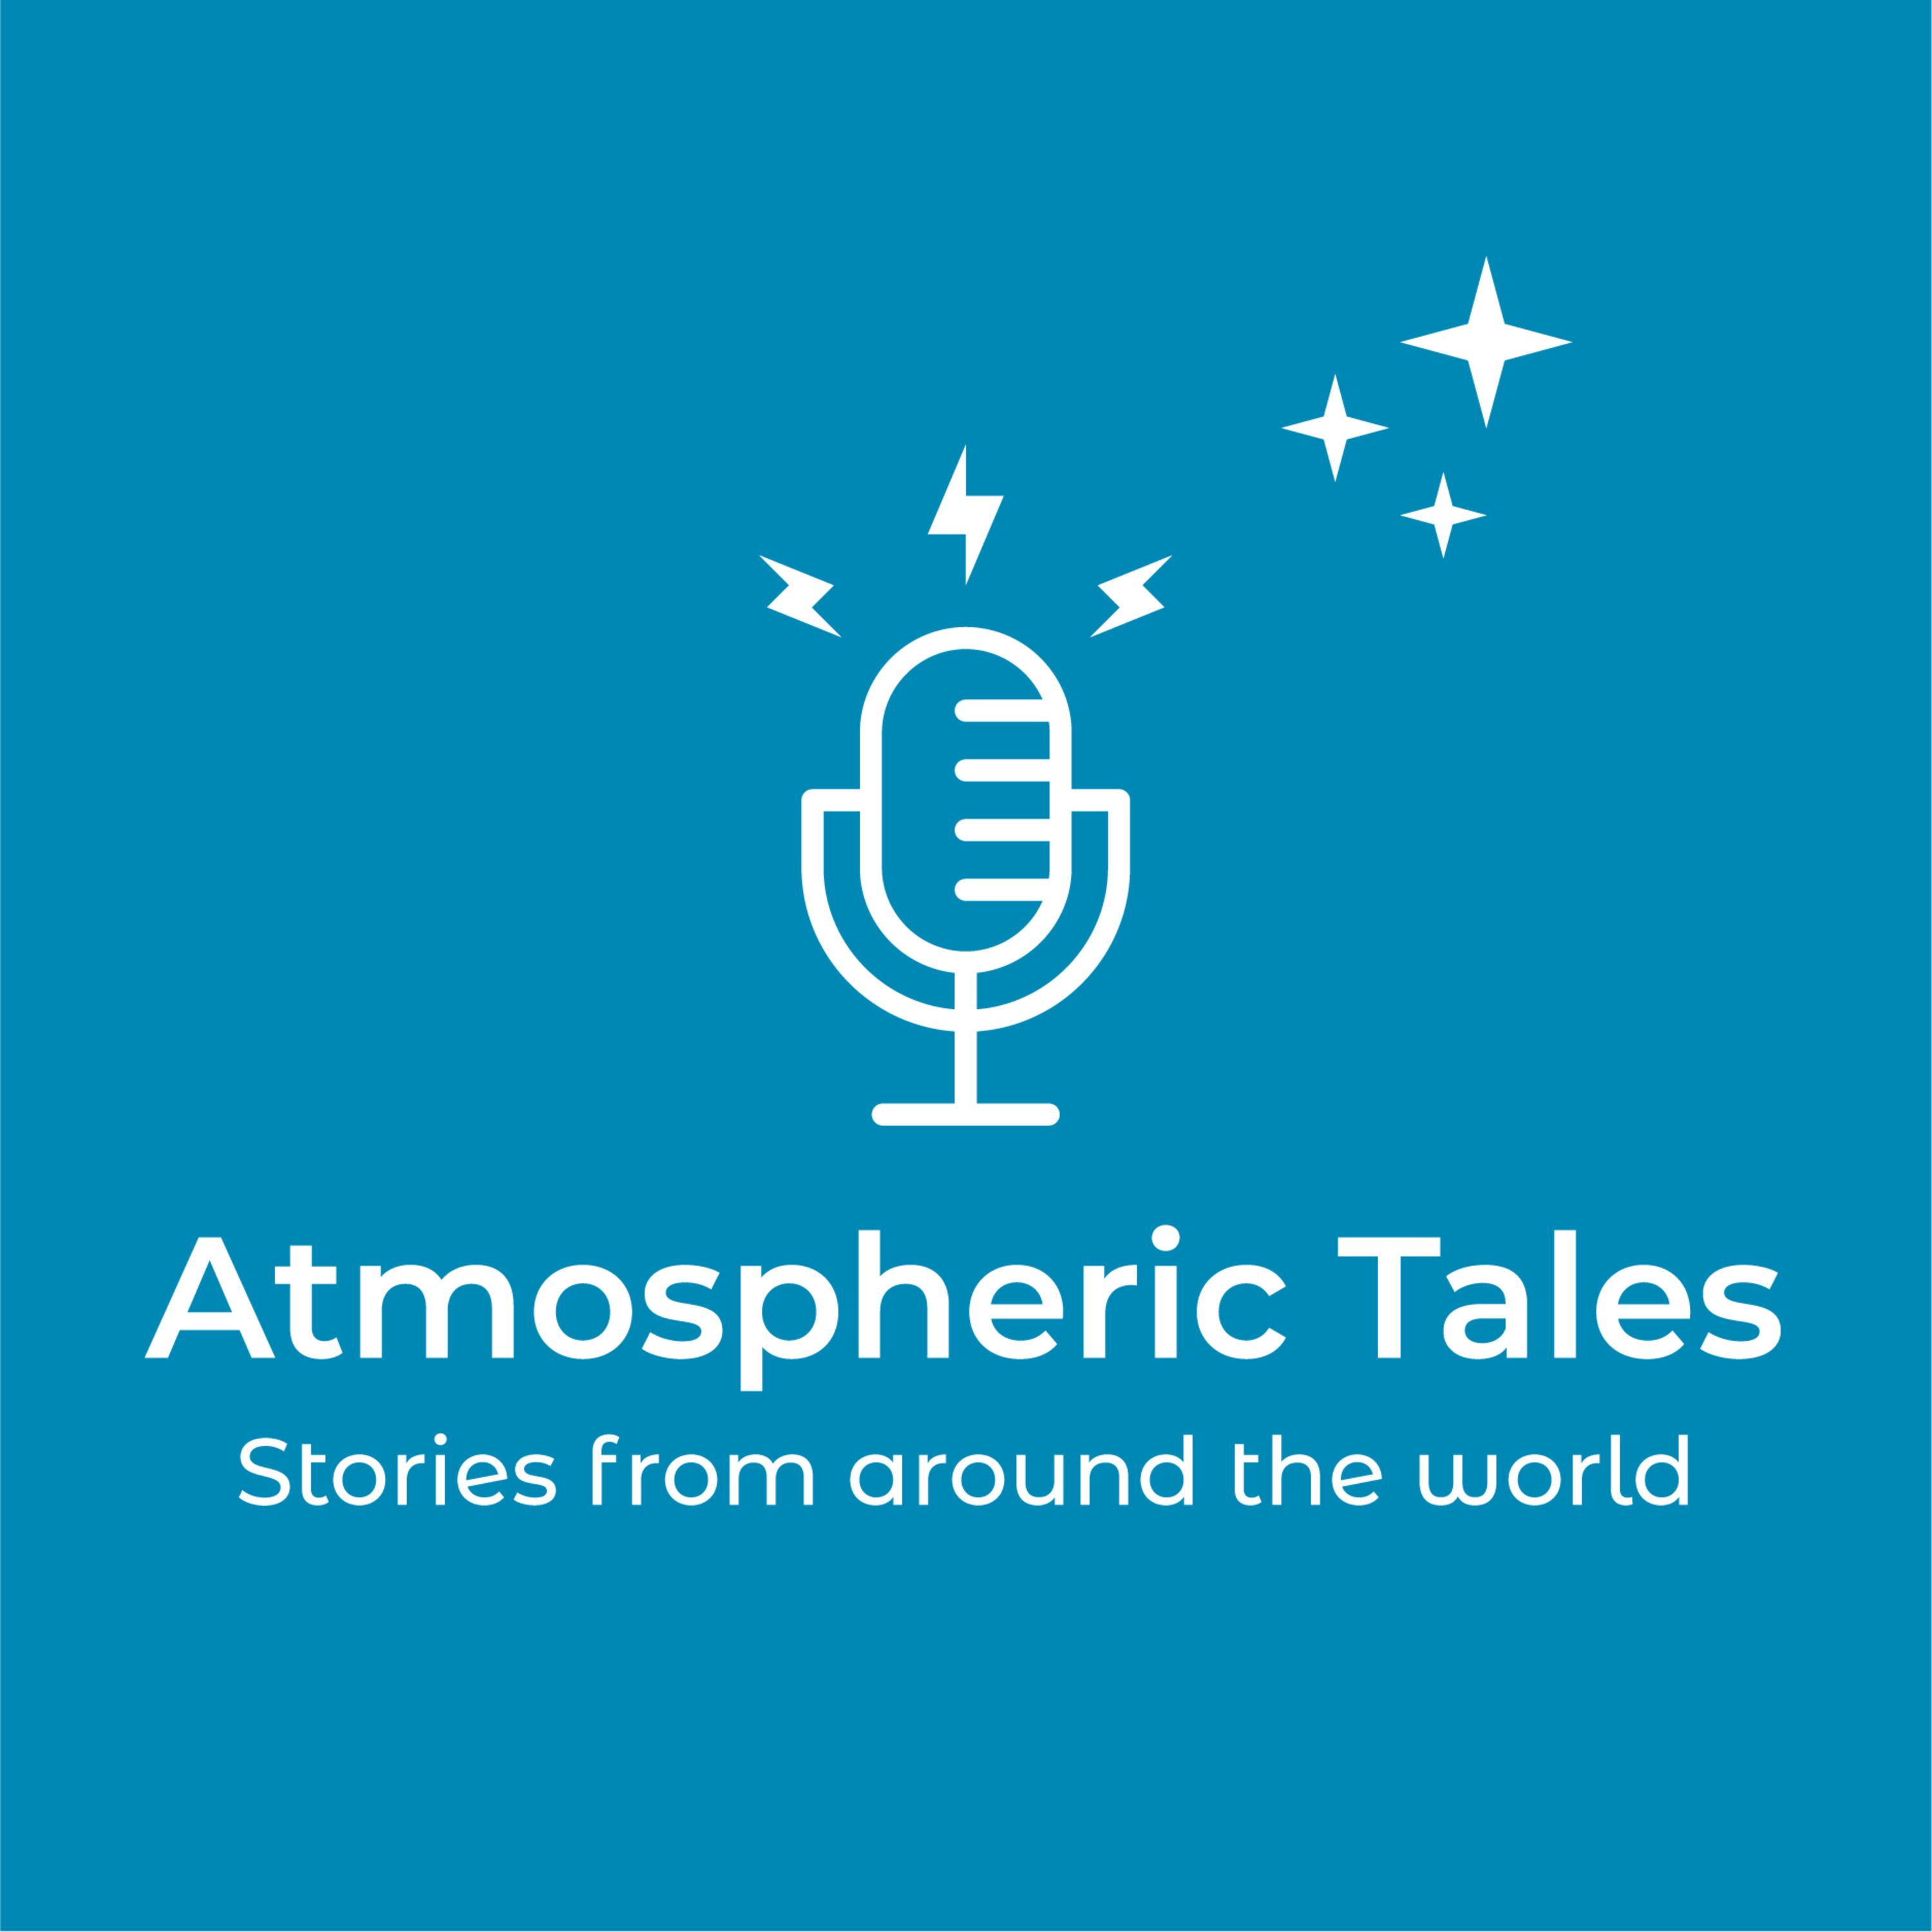 Atmospheric Tales